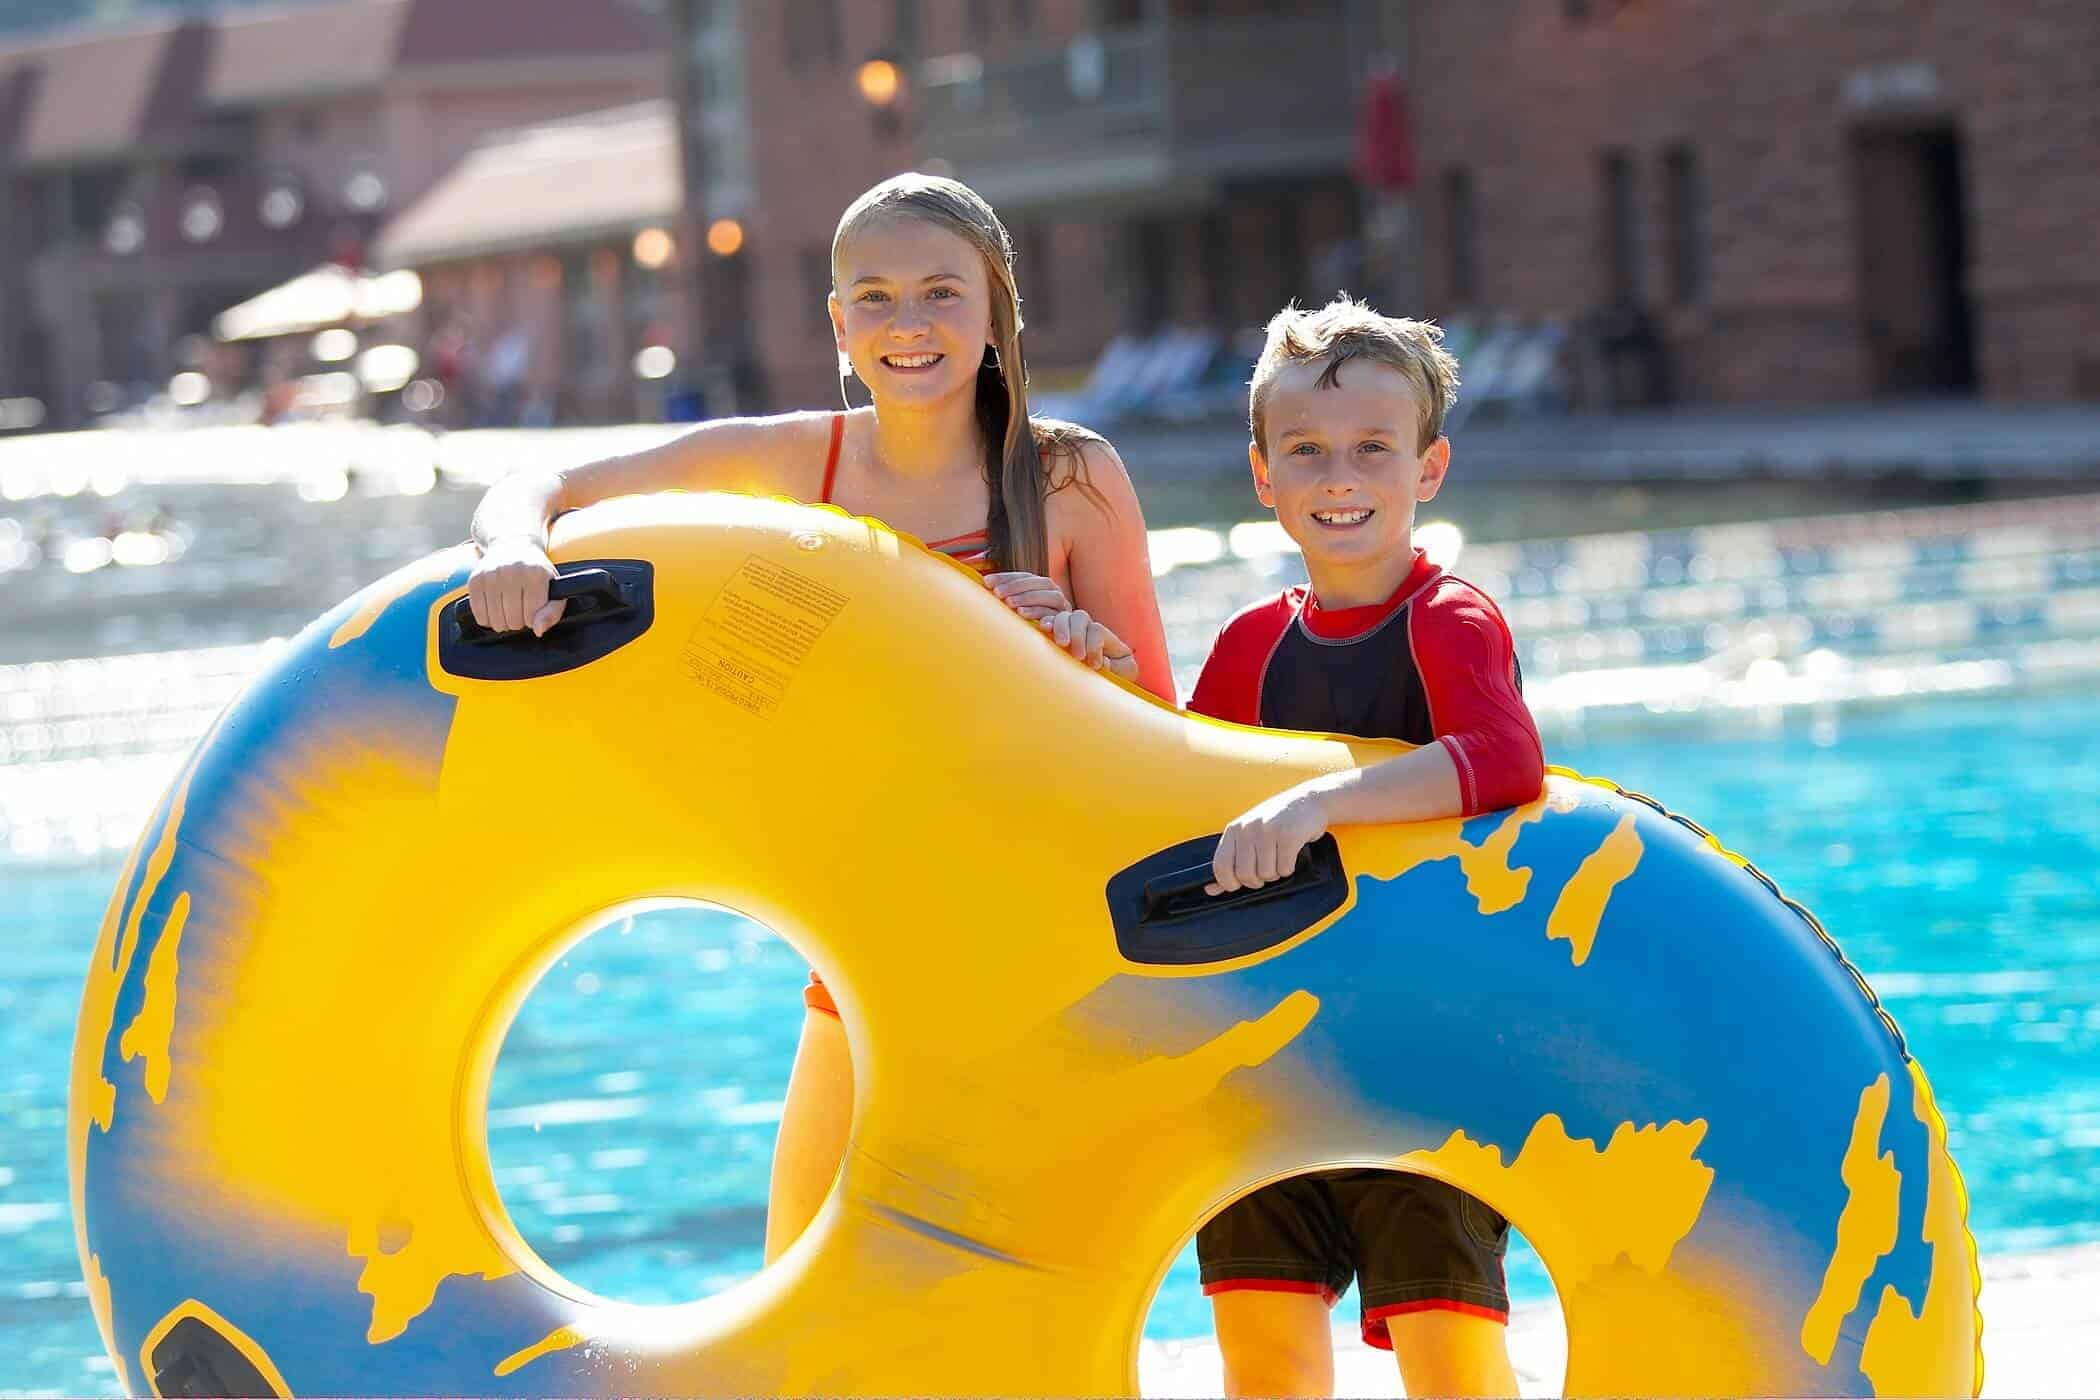 kids holding inflatable tube at the glenwood springs hot springs pool